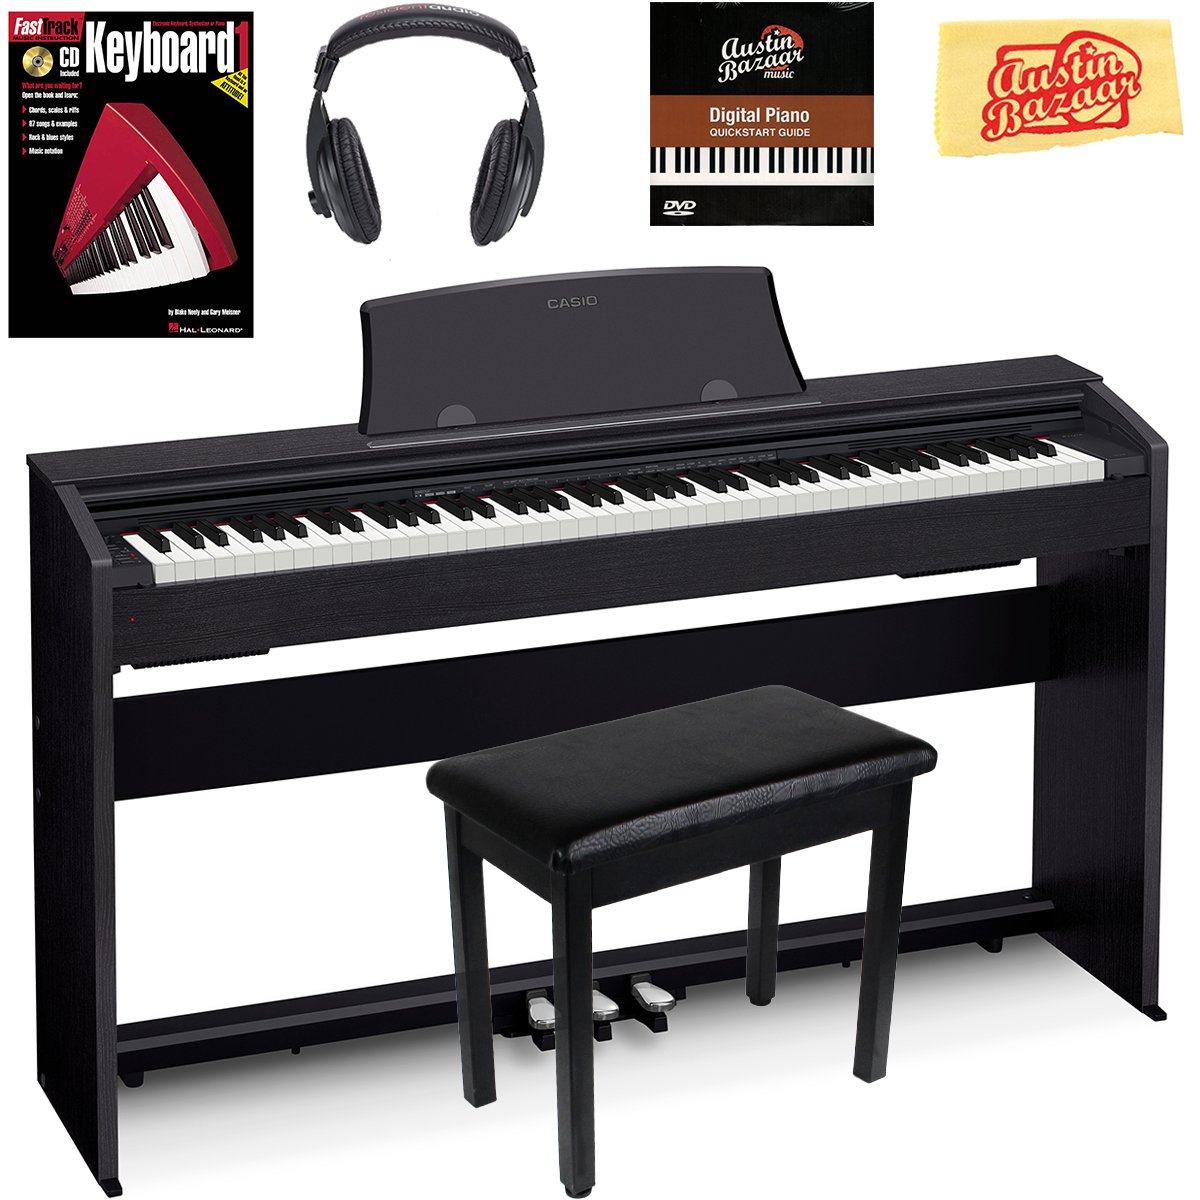 Casio Privia PX-770 Digital Piano - Black Bundle with Furniture Bench, Instructional Book, Austin Bazaar Instructional DVD, and Polishing Cloth by Casio